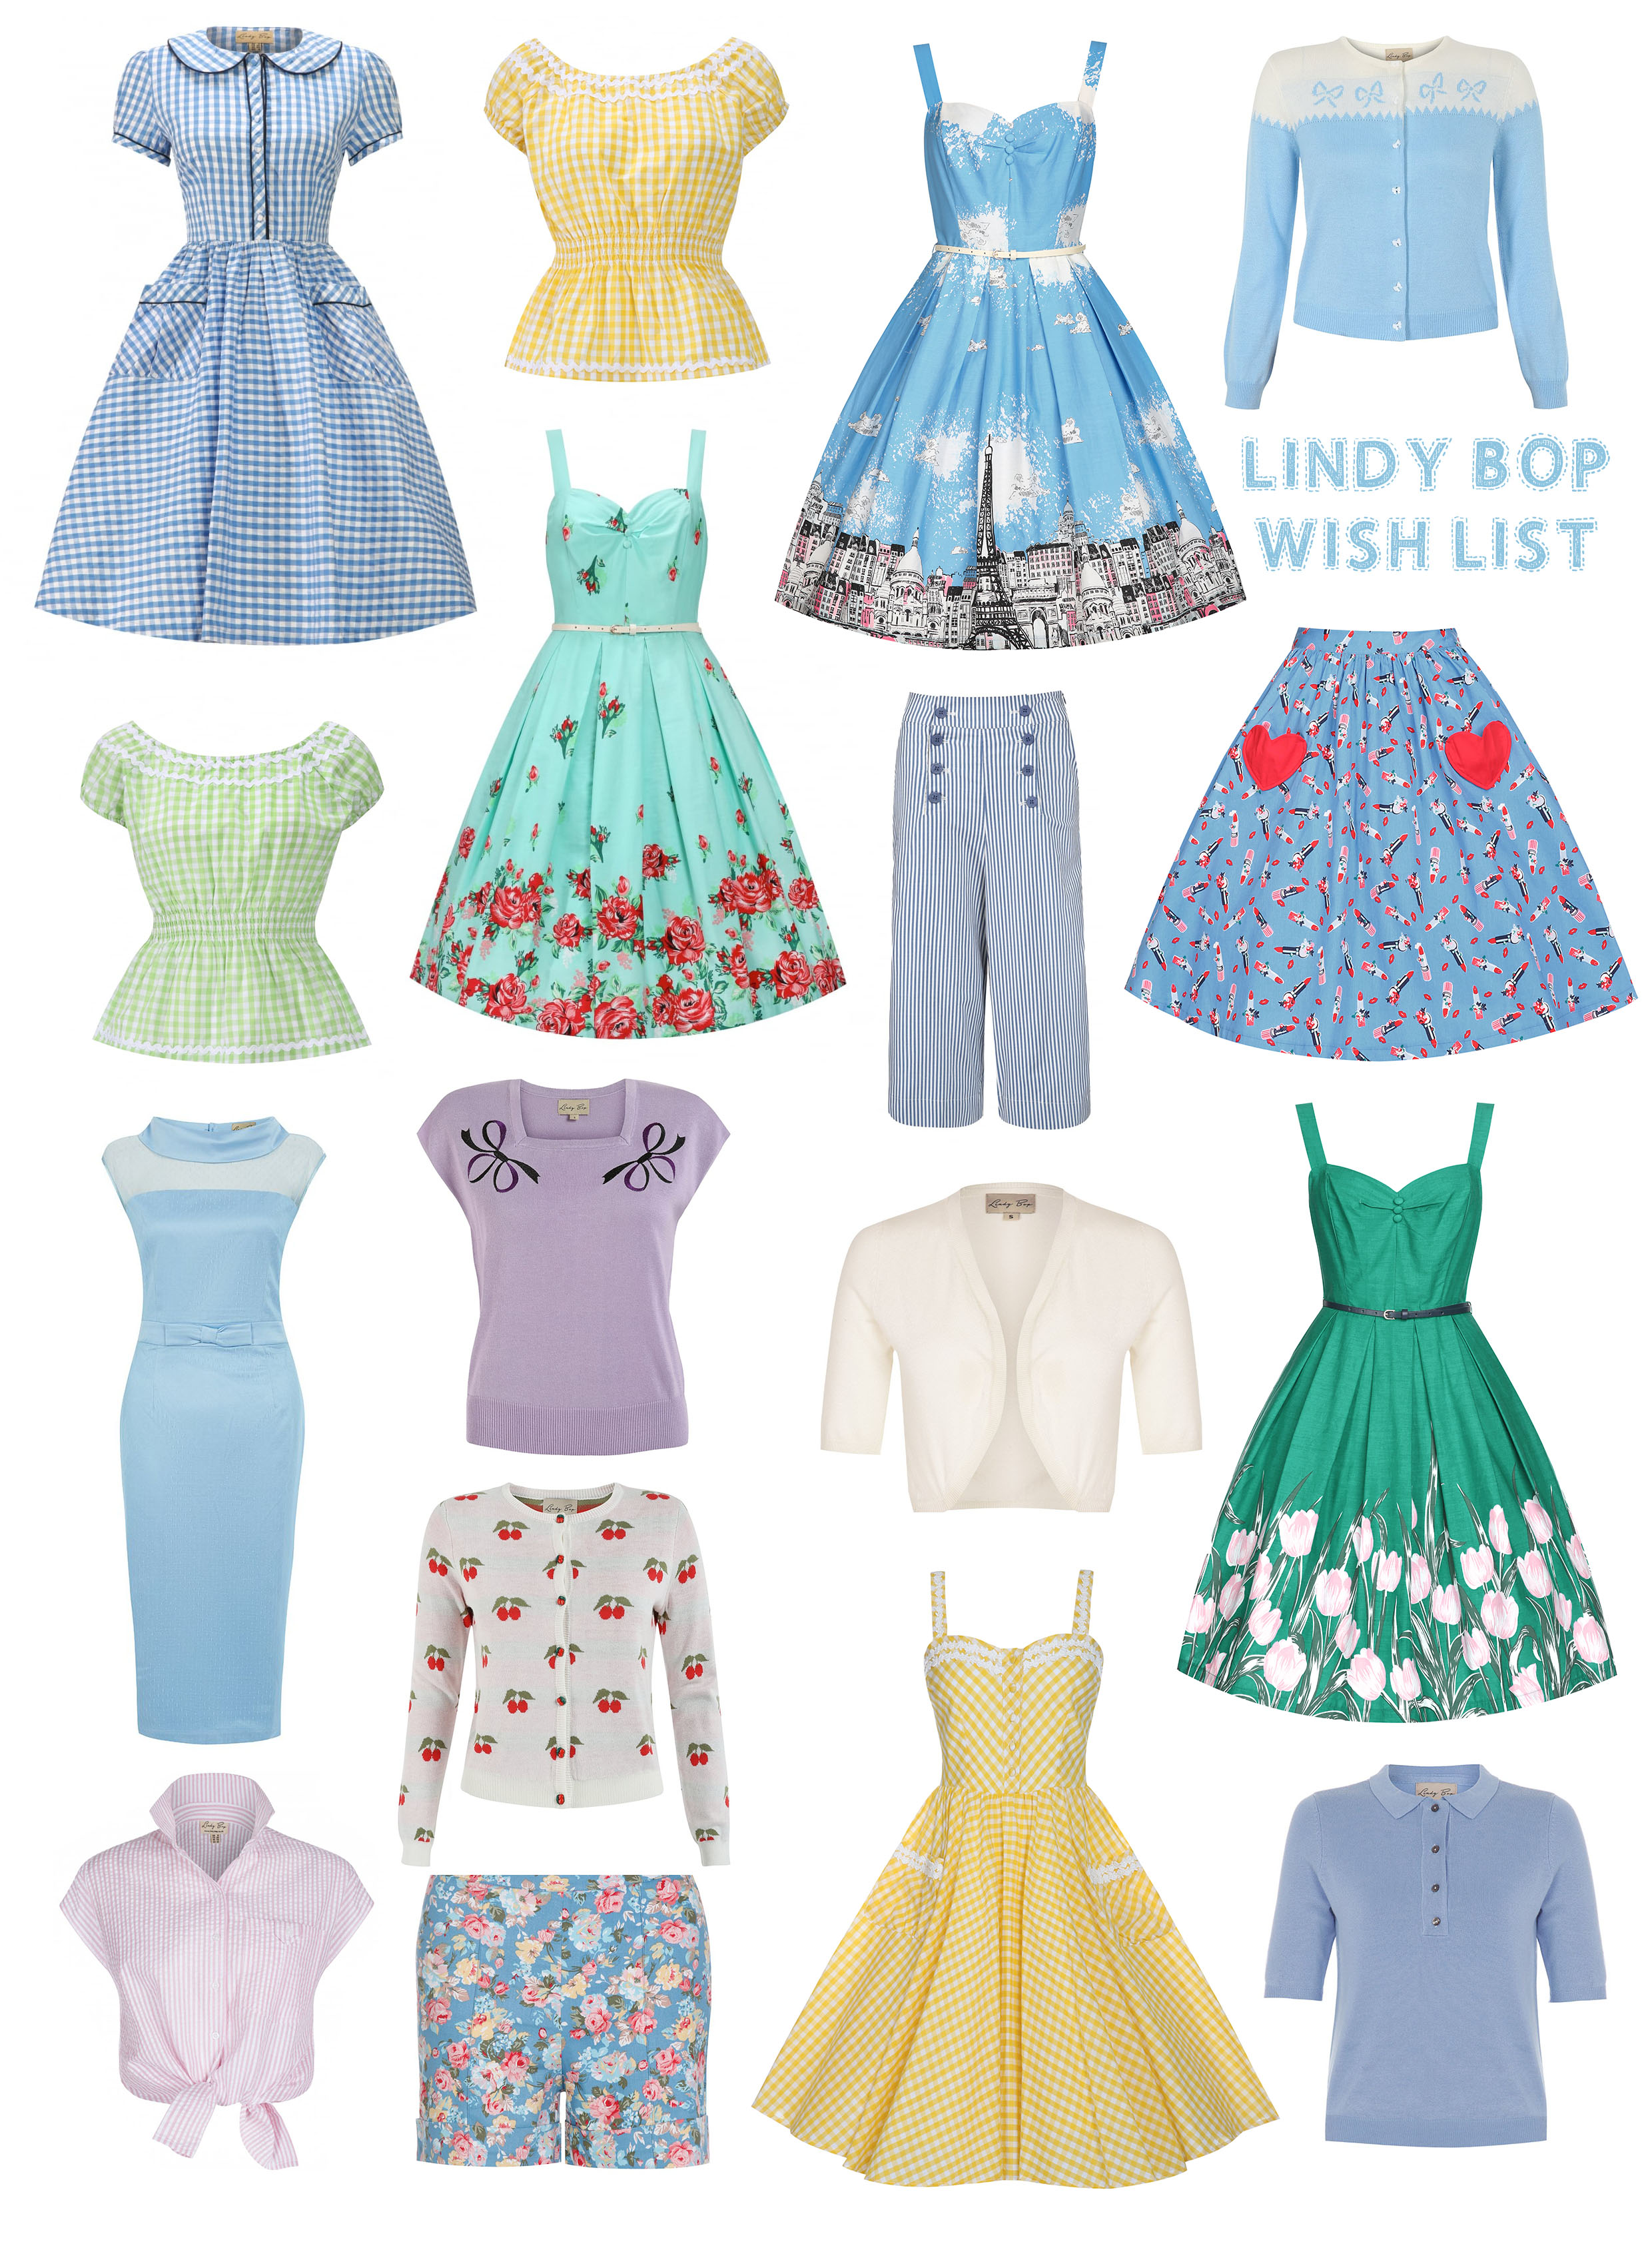 LINDY BOP WISHLIST